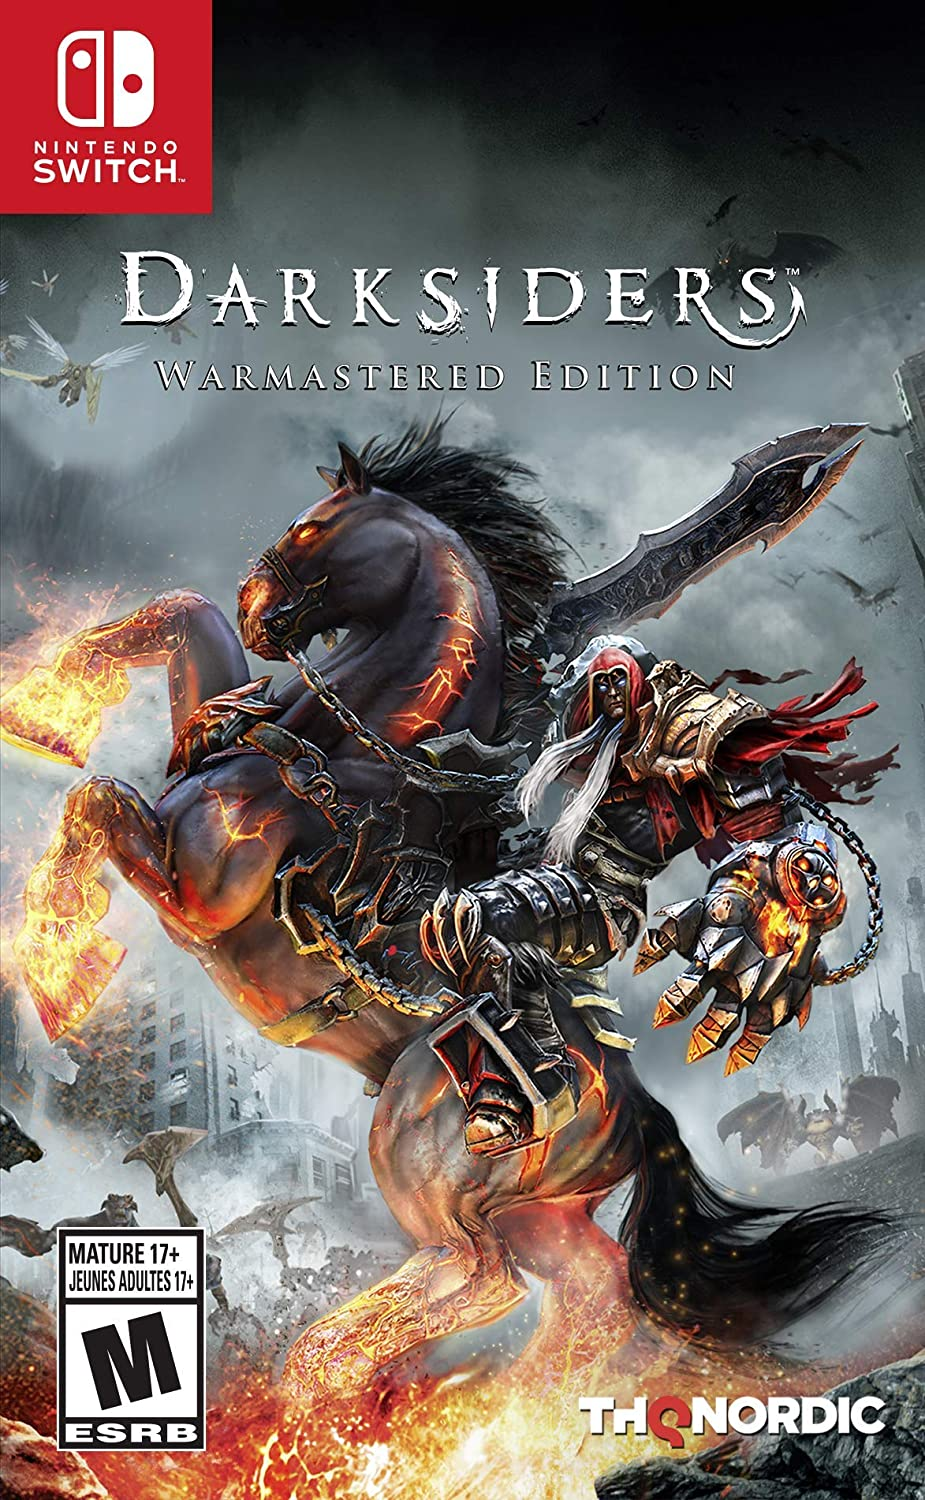 Darksiders: Warmastered Edition for Nintendo Switch USA: Amazon.es: Thq Nordic: Cine y Series TV